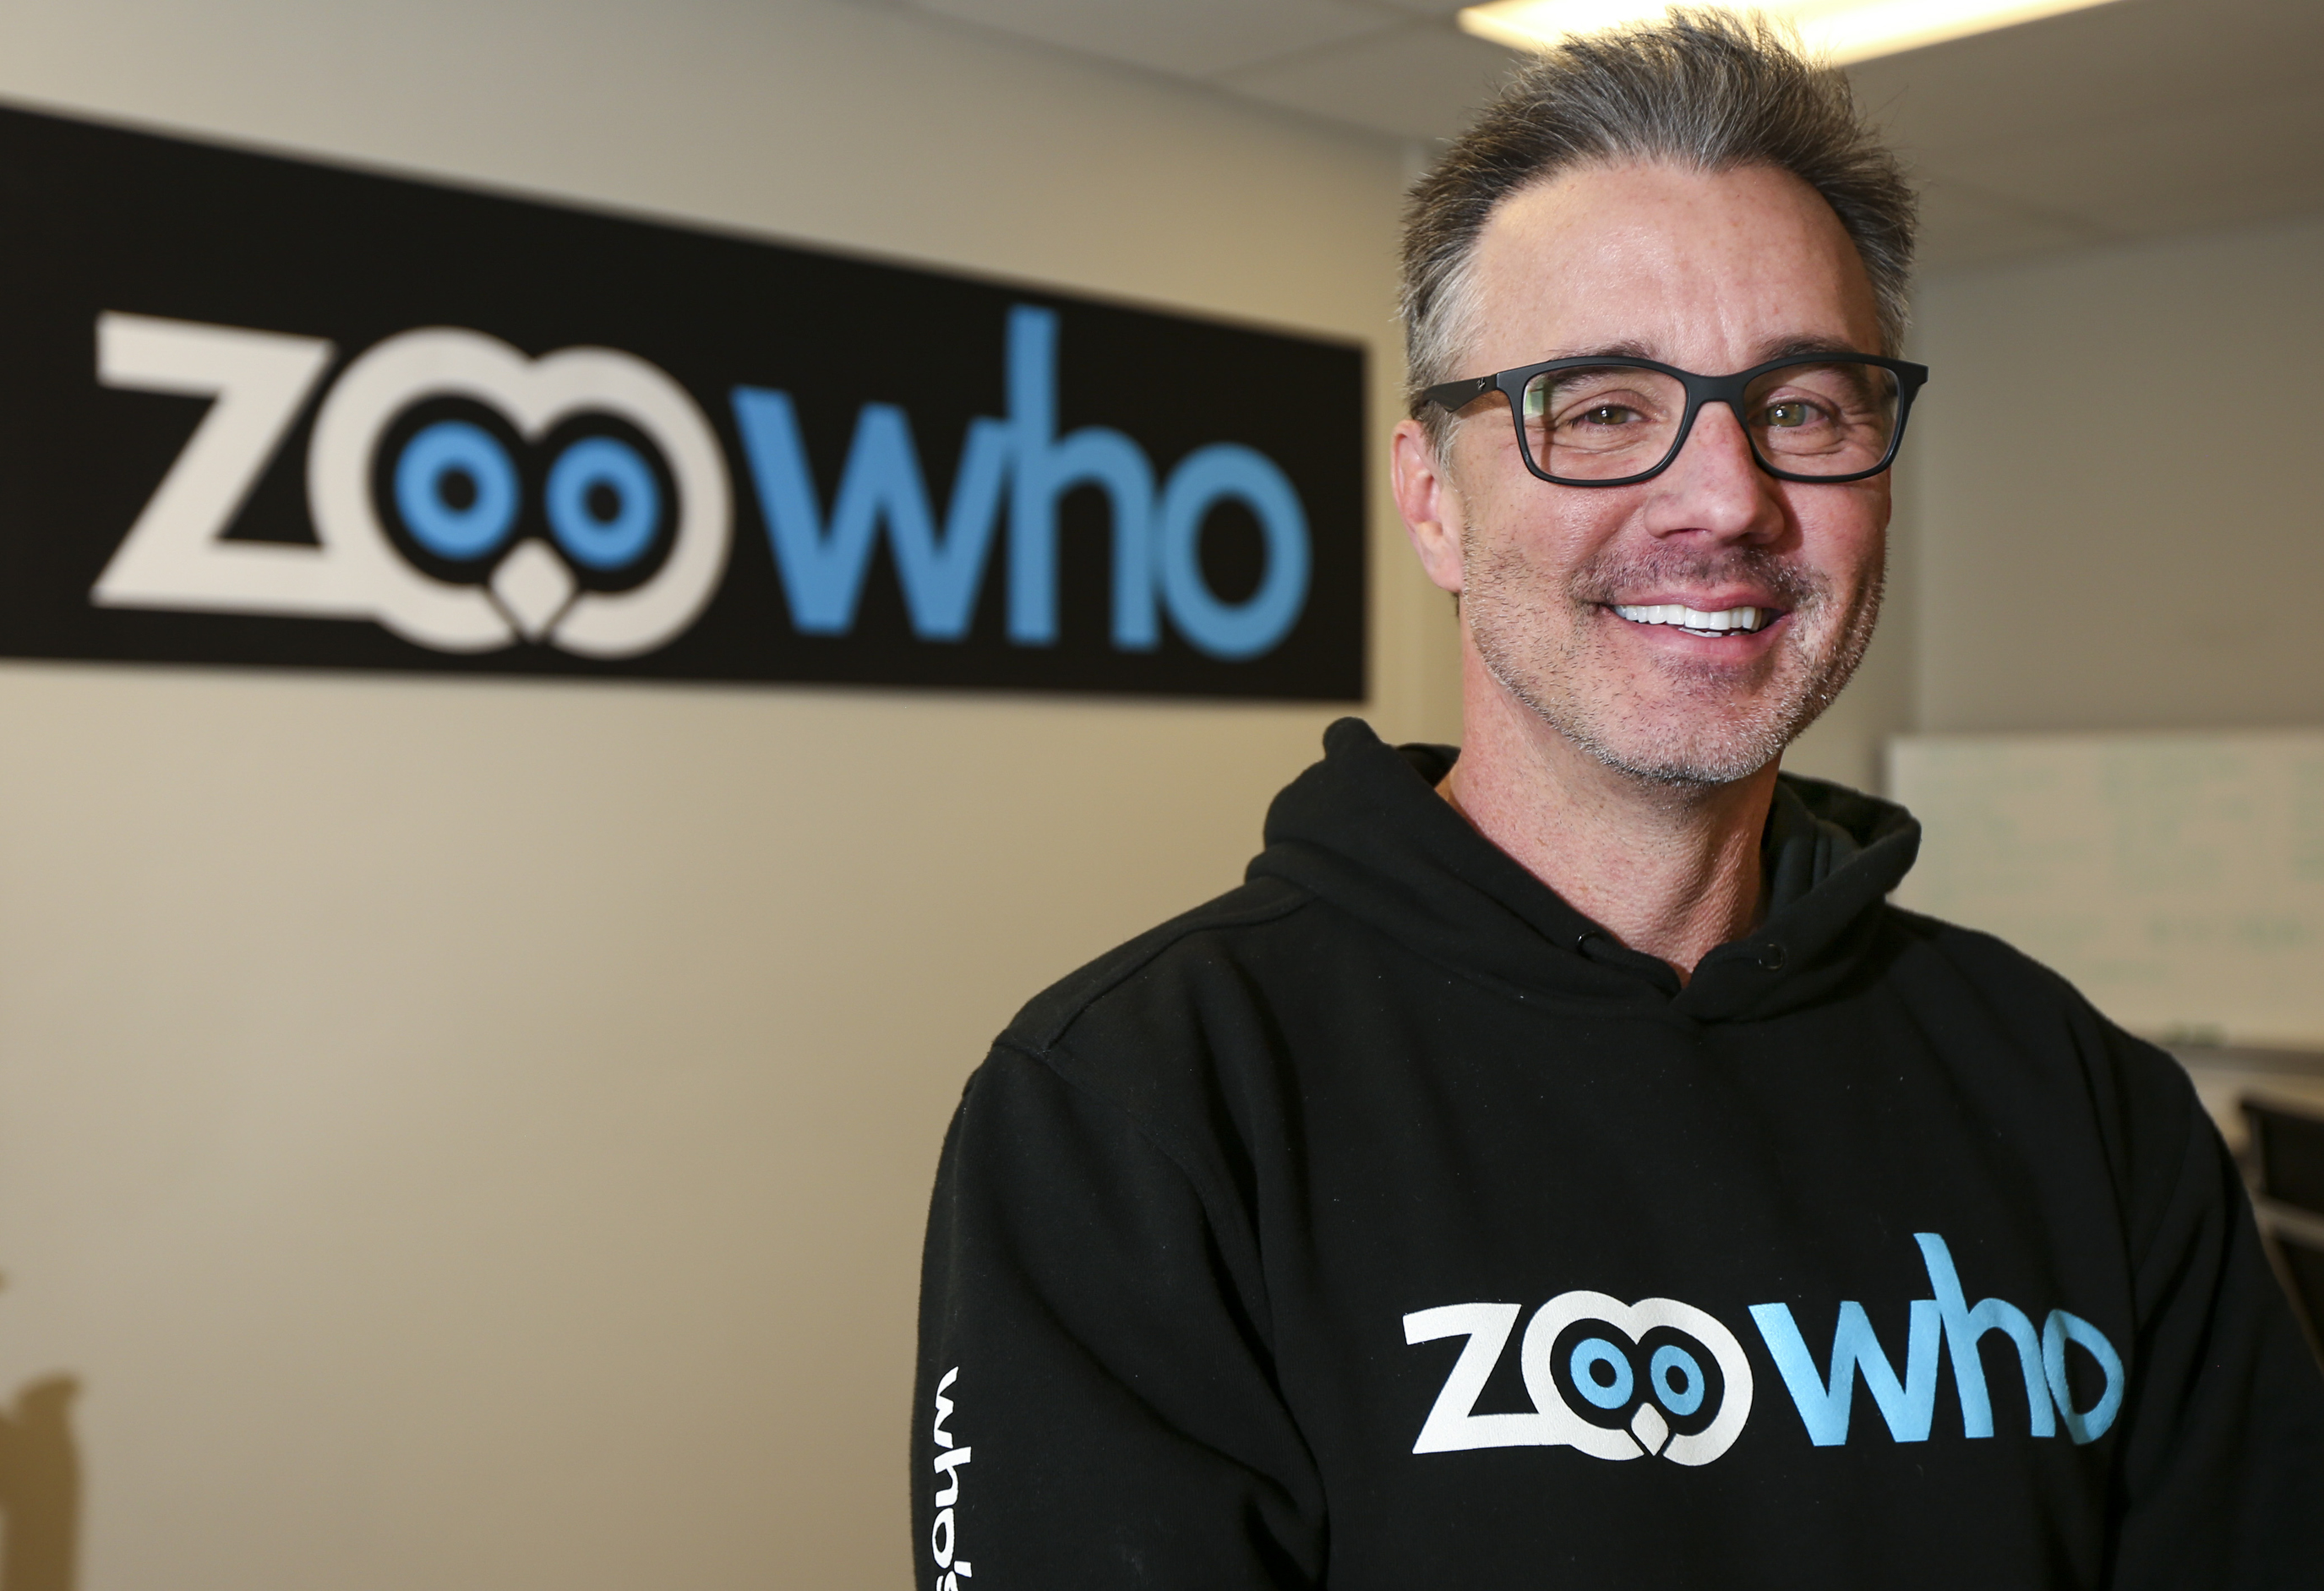 ZooWho CEO and founder Sean Bair poses for a portrait at the ZooWho offices in Provo on Friday, Oct. 11, 2019. ZooWho is a social media application that allows people to keep track of things and people they care about.